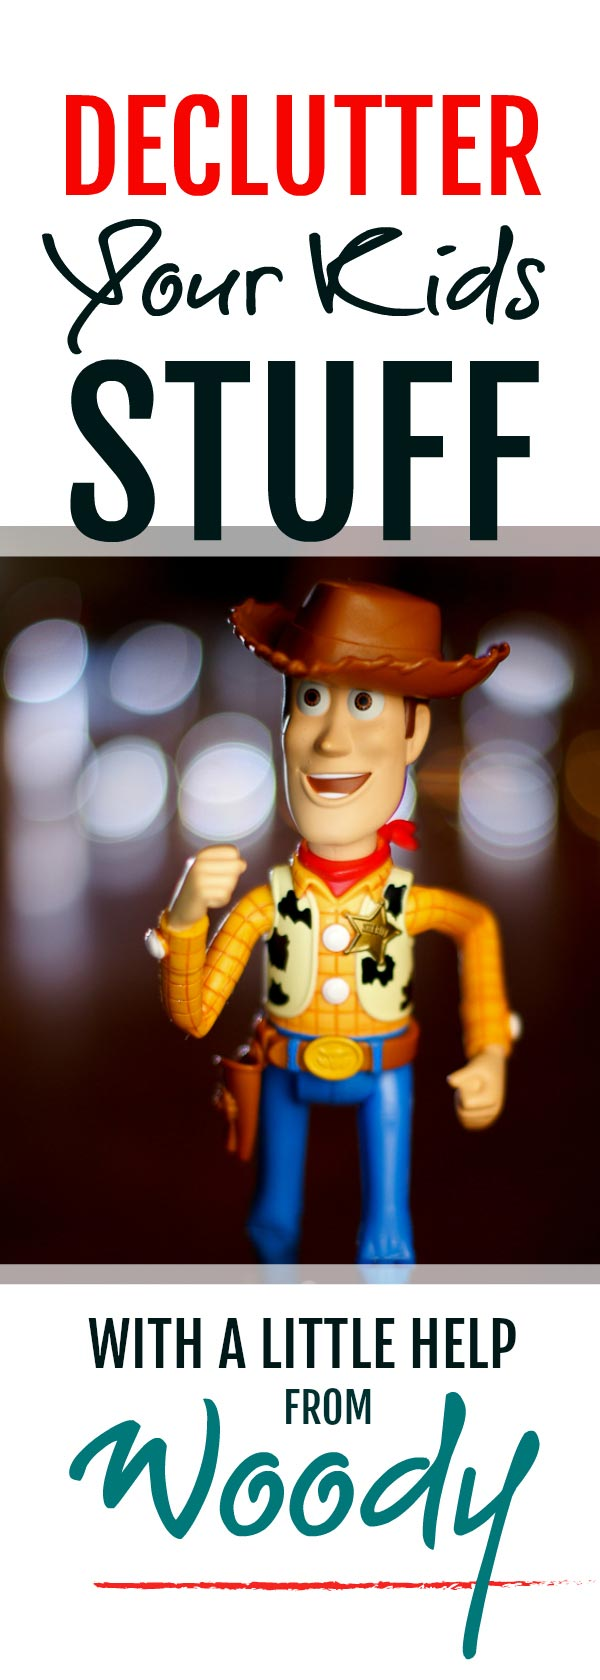 Declutter your kids stuff with a little help from Woody #declutter #decluttering #declutter365